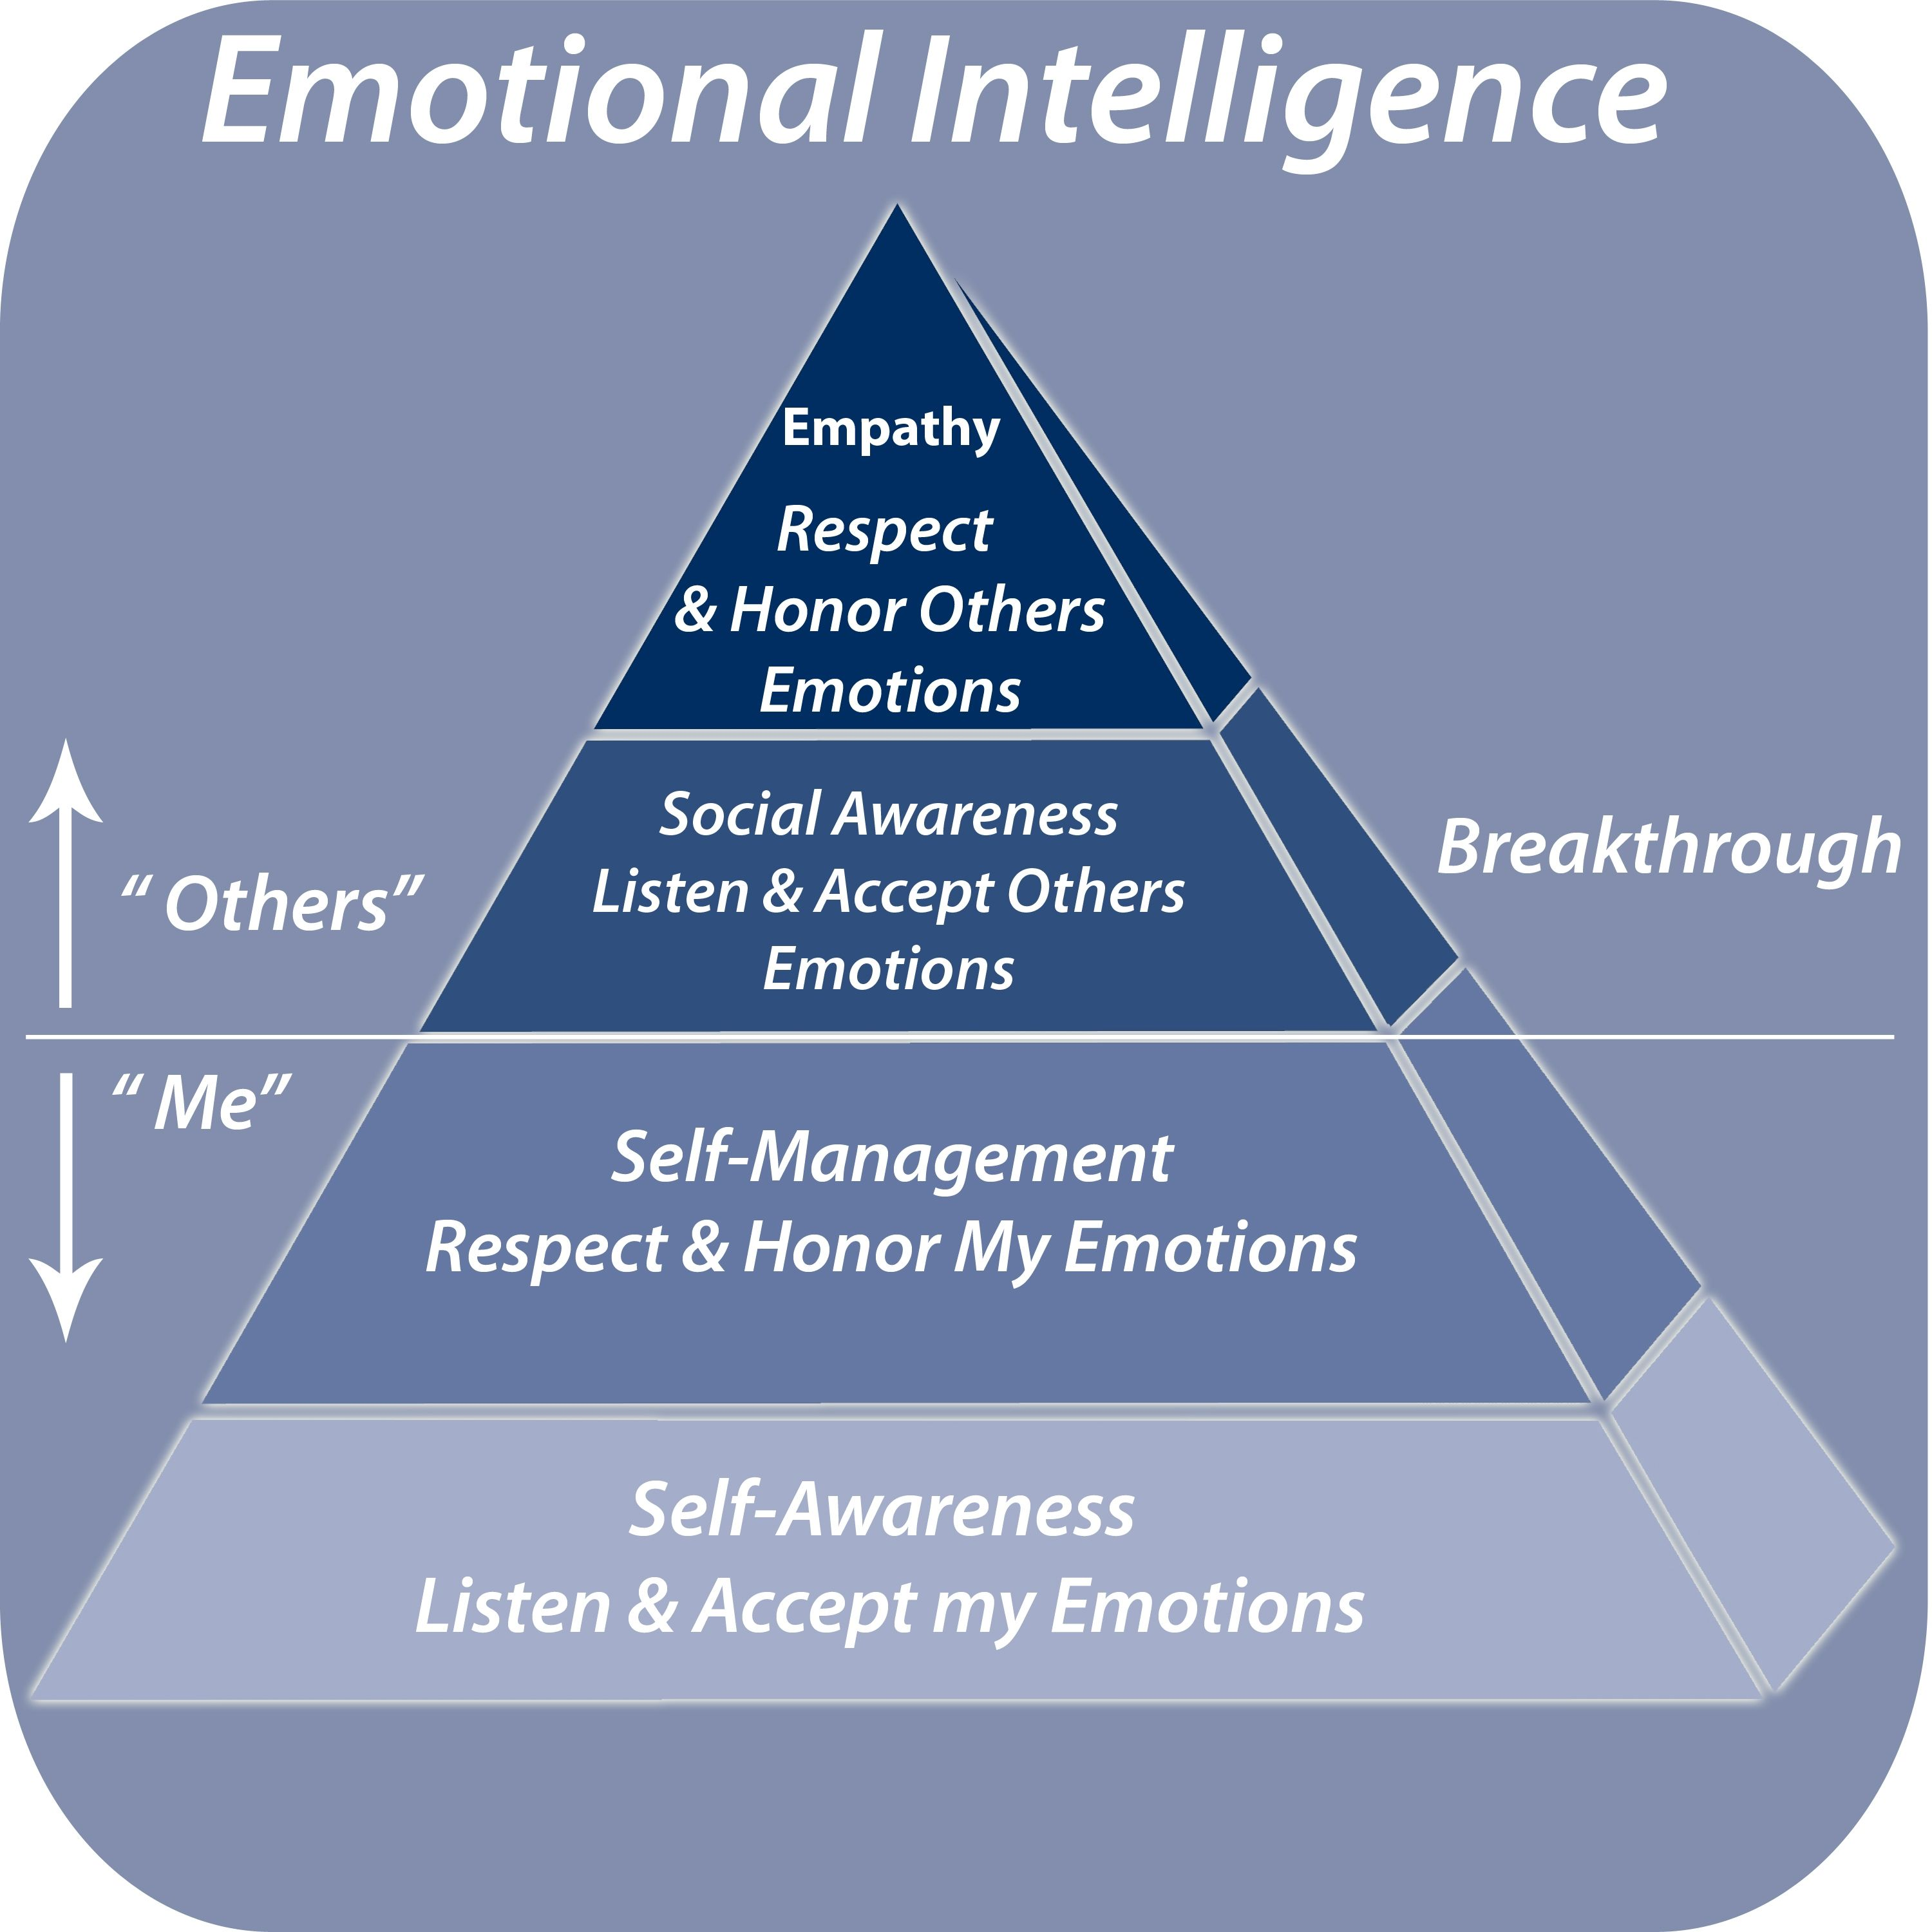 write an essay on emotional intelligence Emotional intelligence psychology essay (creative writing jobs nsw) posted by in uncategorized 0 comments 1 week into college and i already have 2 essays.